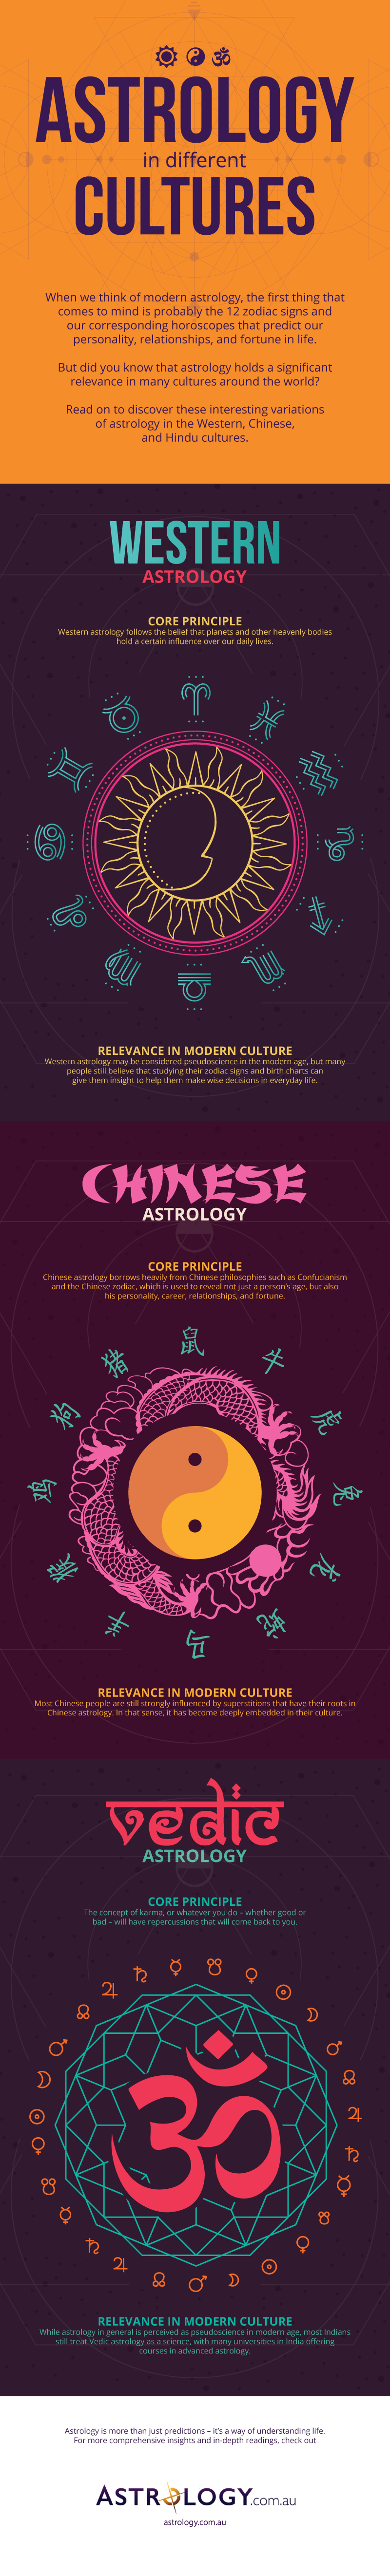 Astrology in Western Chinese and Indian Vedic Cultures